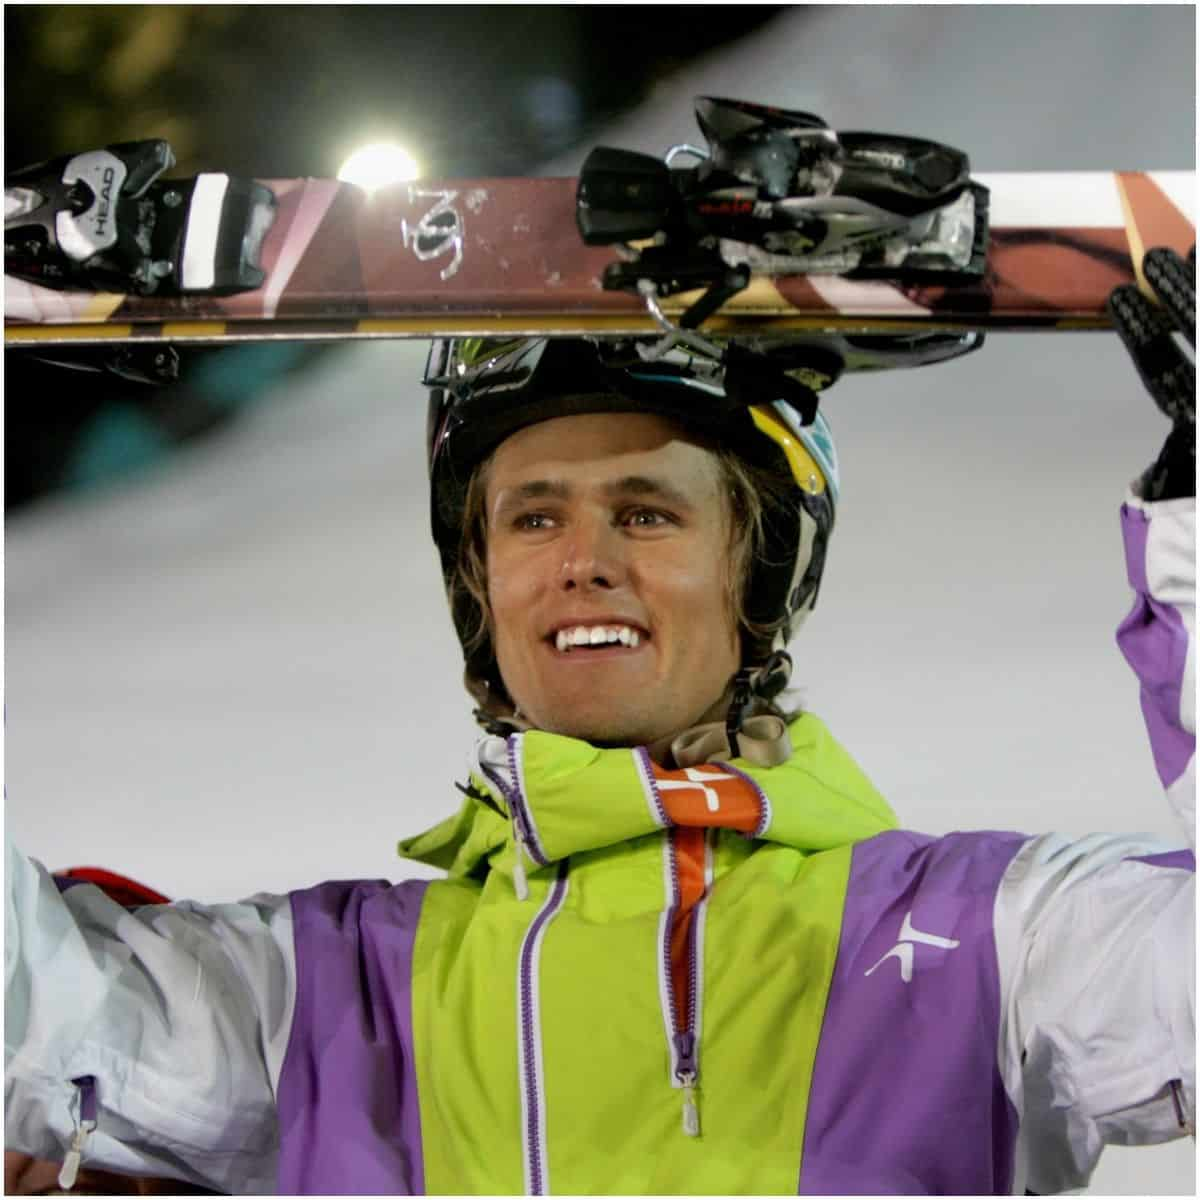 what is the net worth of Jon Olsson